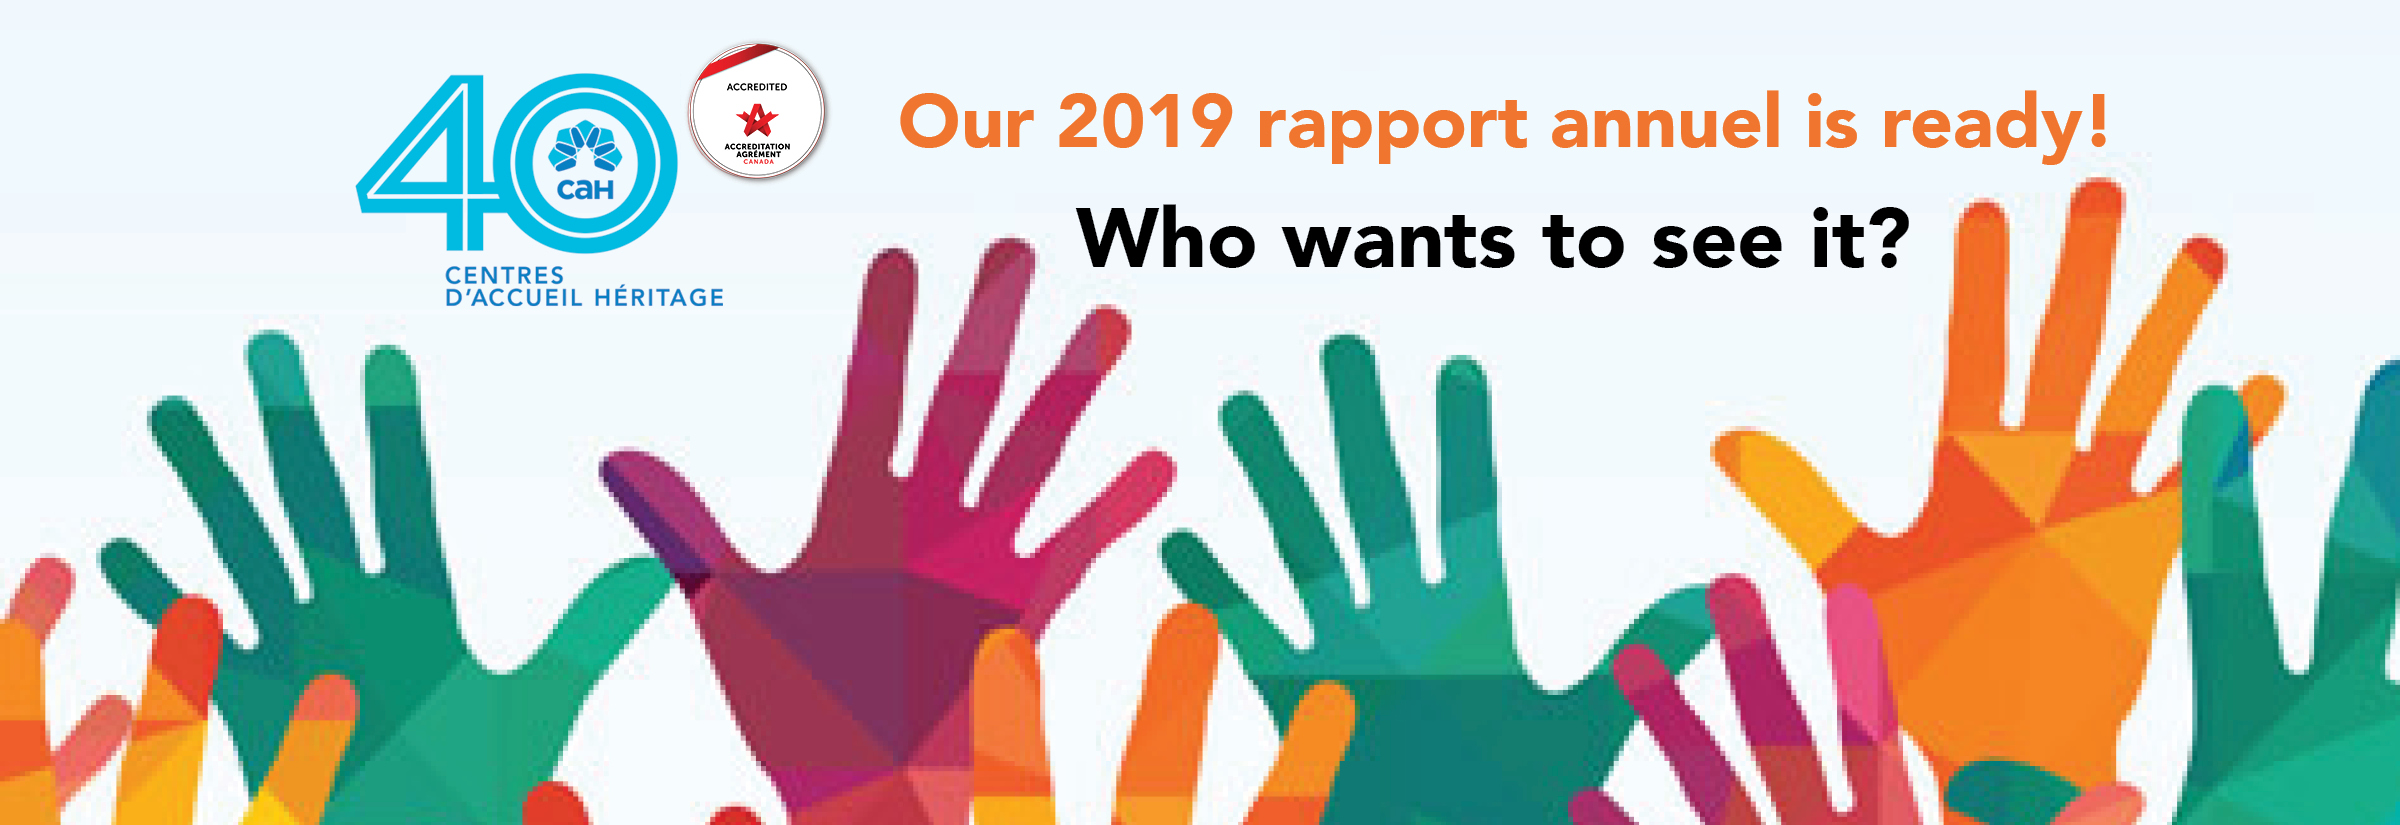 Who wants to see CAH's 2019 Annual Report?